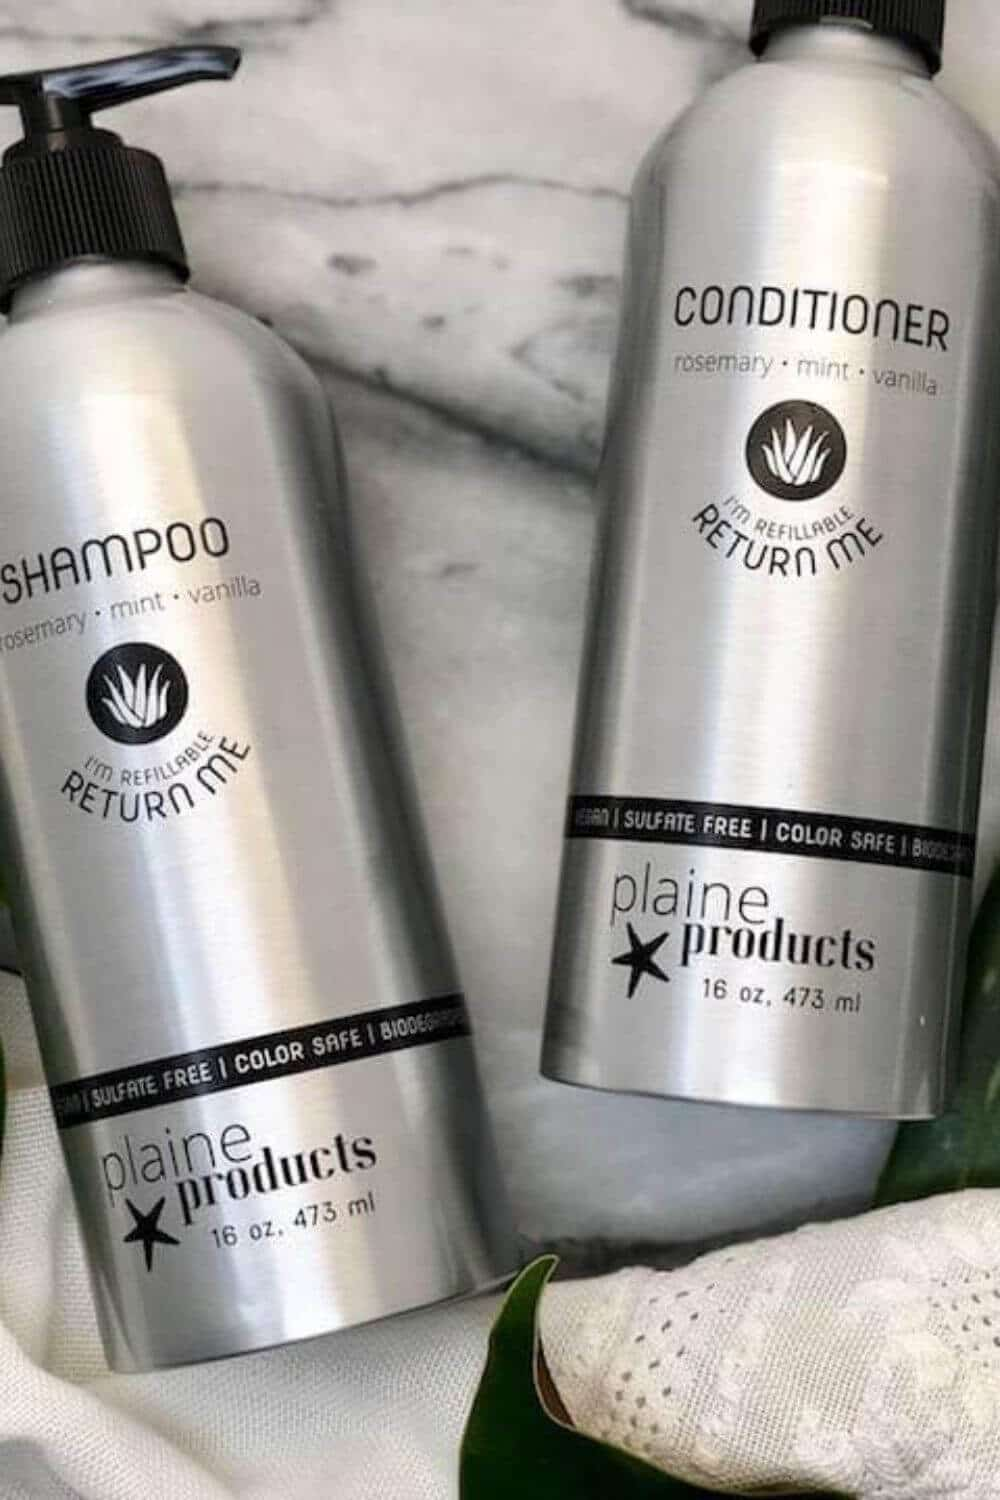 Switching to vegan and cruelty-free shampoo, conditioner, and other hair products is great but isn't enough from an environmental perspective. Thankfully, there are now many zero waste shampoo and conditioners available. Image by Plaine Products #zerowasteshampoo #zerowasteconditioner #sustainablejungle